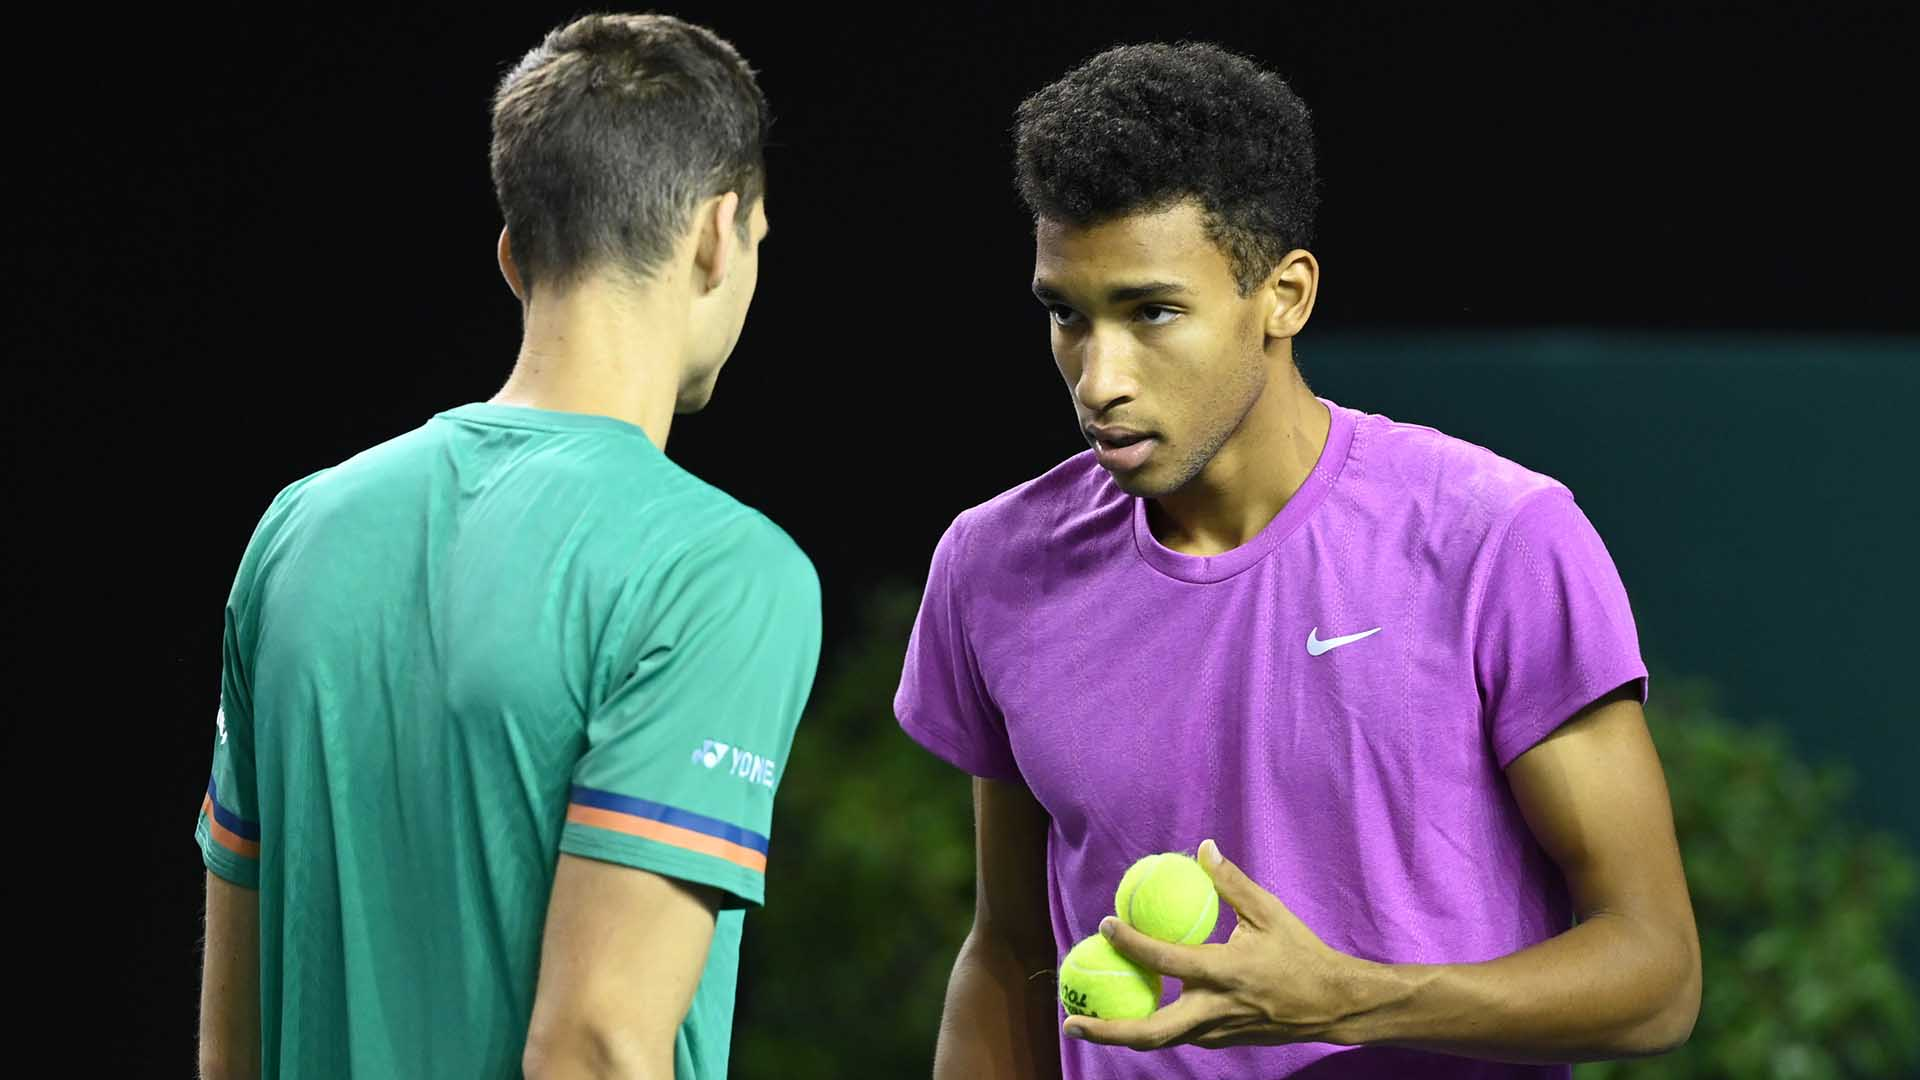 Felix Auger-Aliassime (right) and Hubert Hurkacz (left) own a 5-1 team record.